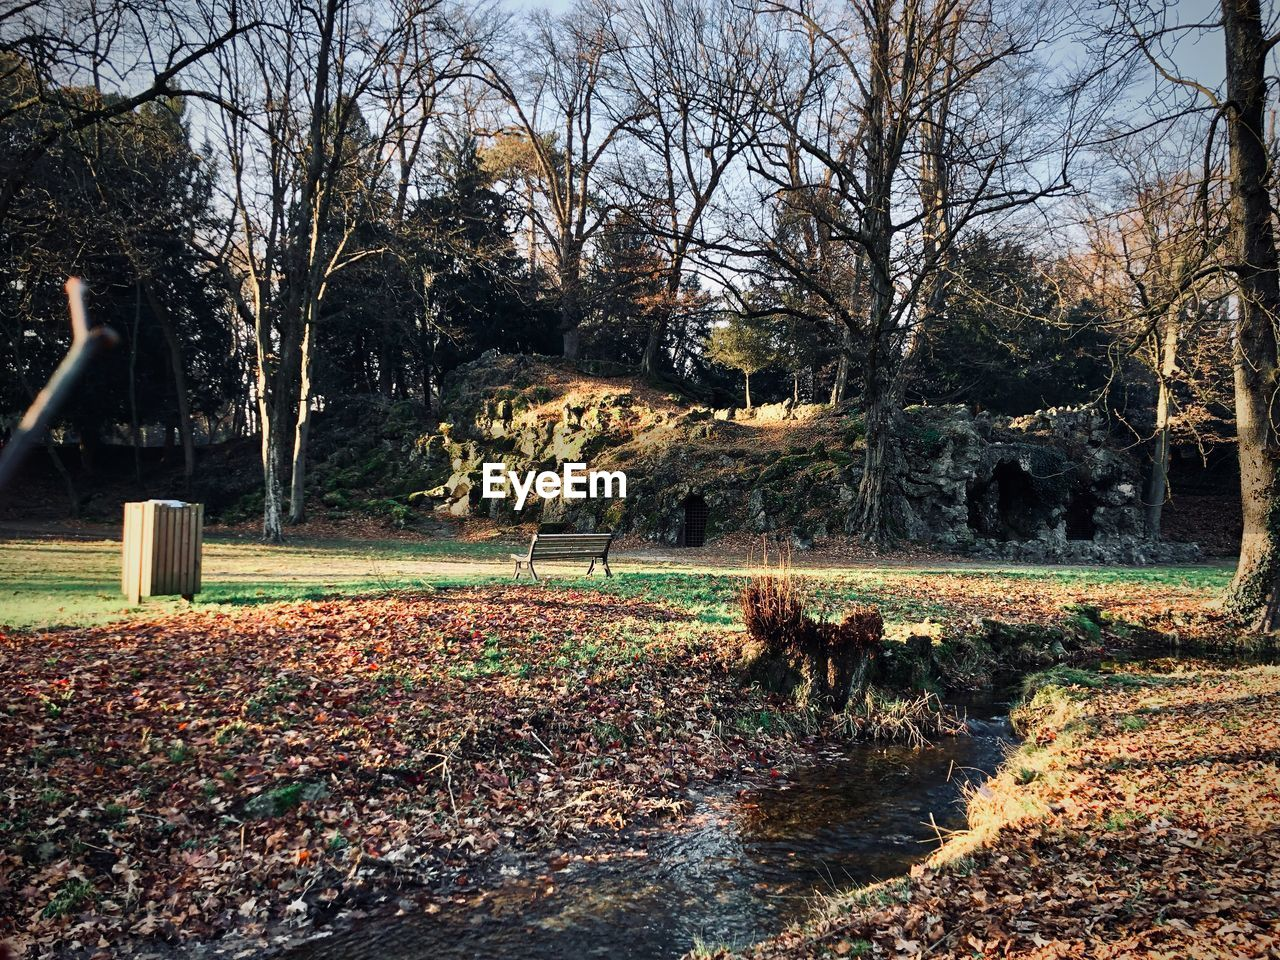 tree, plant, autumn, nature, bare tree, plant part, leaf, day, change, park, outdoors, architecture, no people, land, branch, park - man made space, tree trunk, leaves, field, trunk, fall